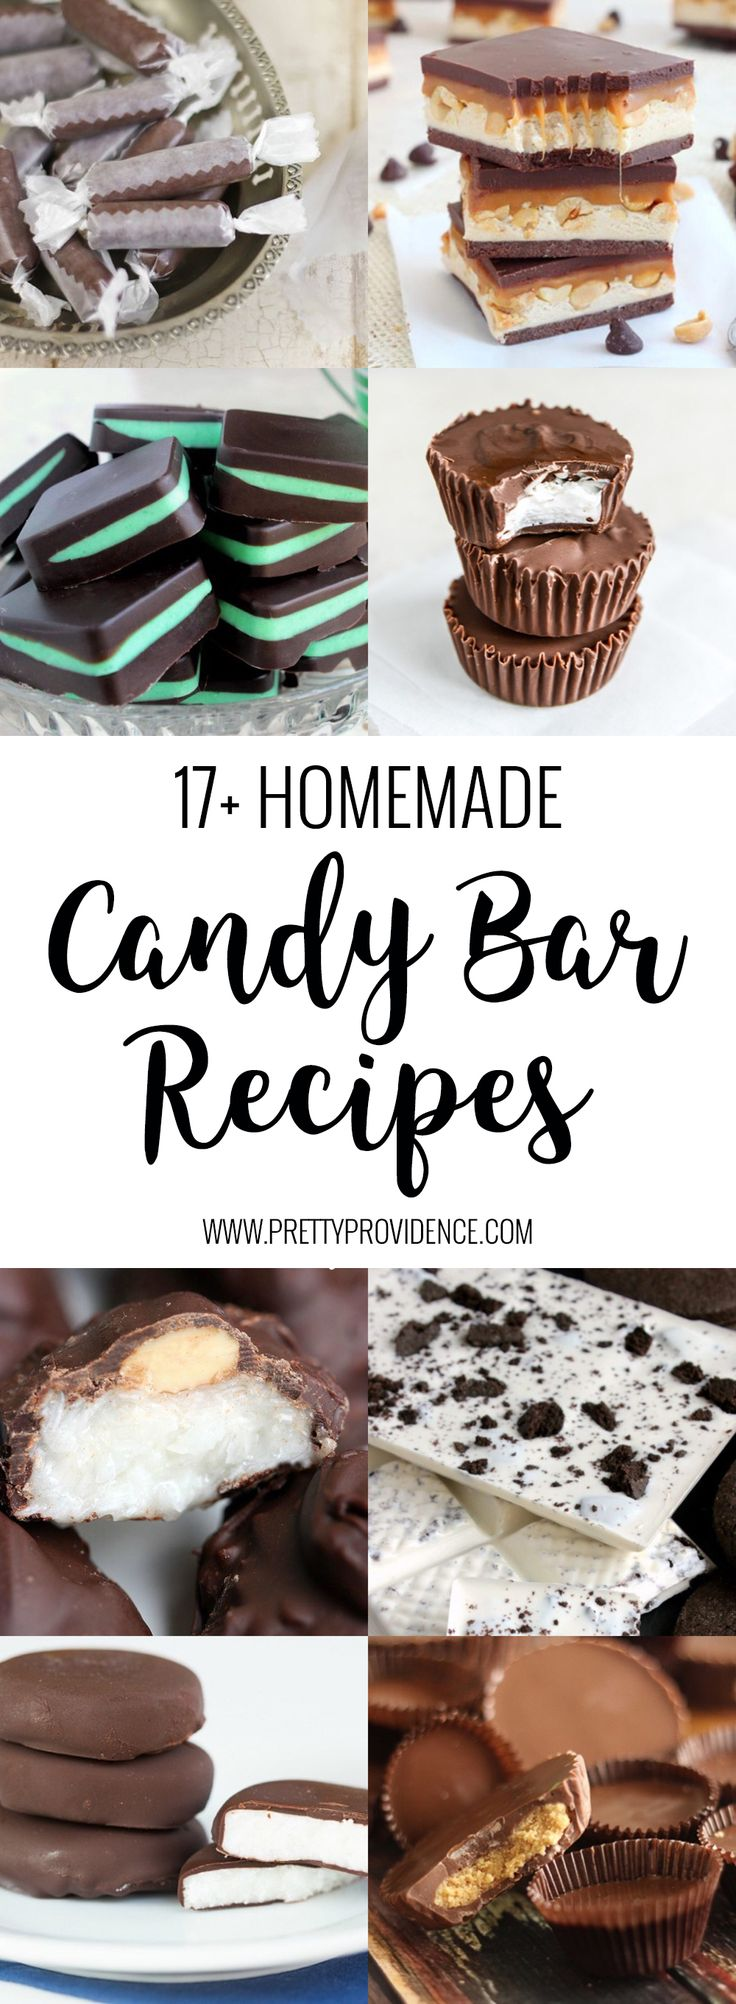 Forget buying candy bars! Now you can make all of your favorite candy bars at home, and they are even tastier than the store bought varieties!